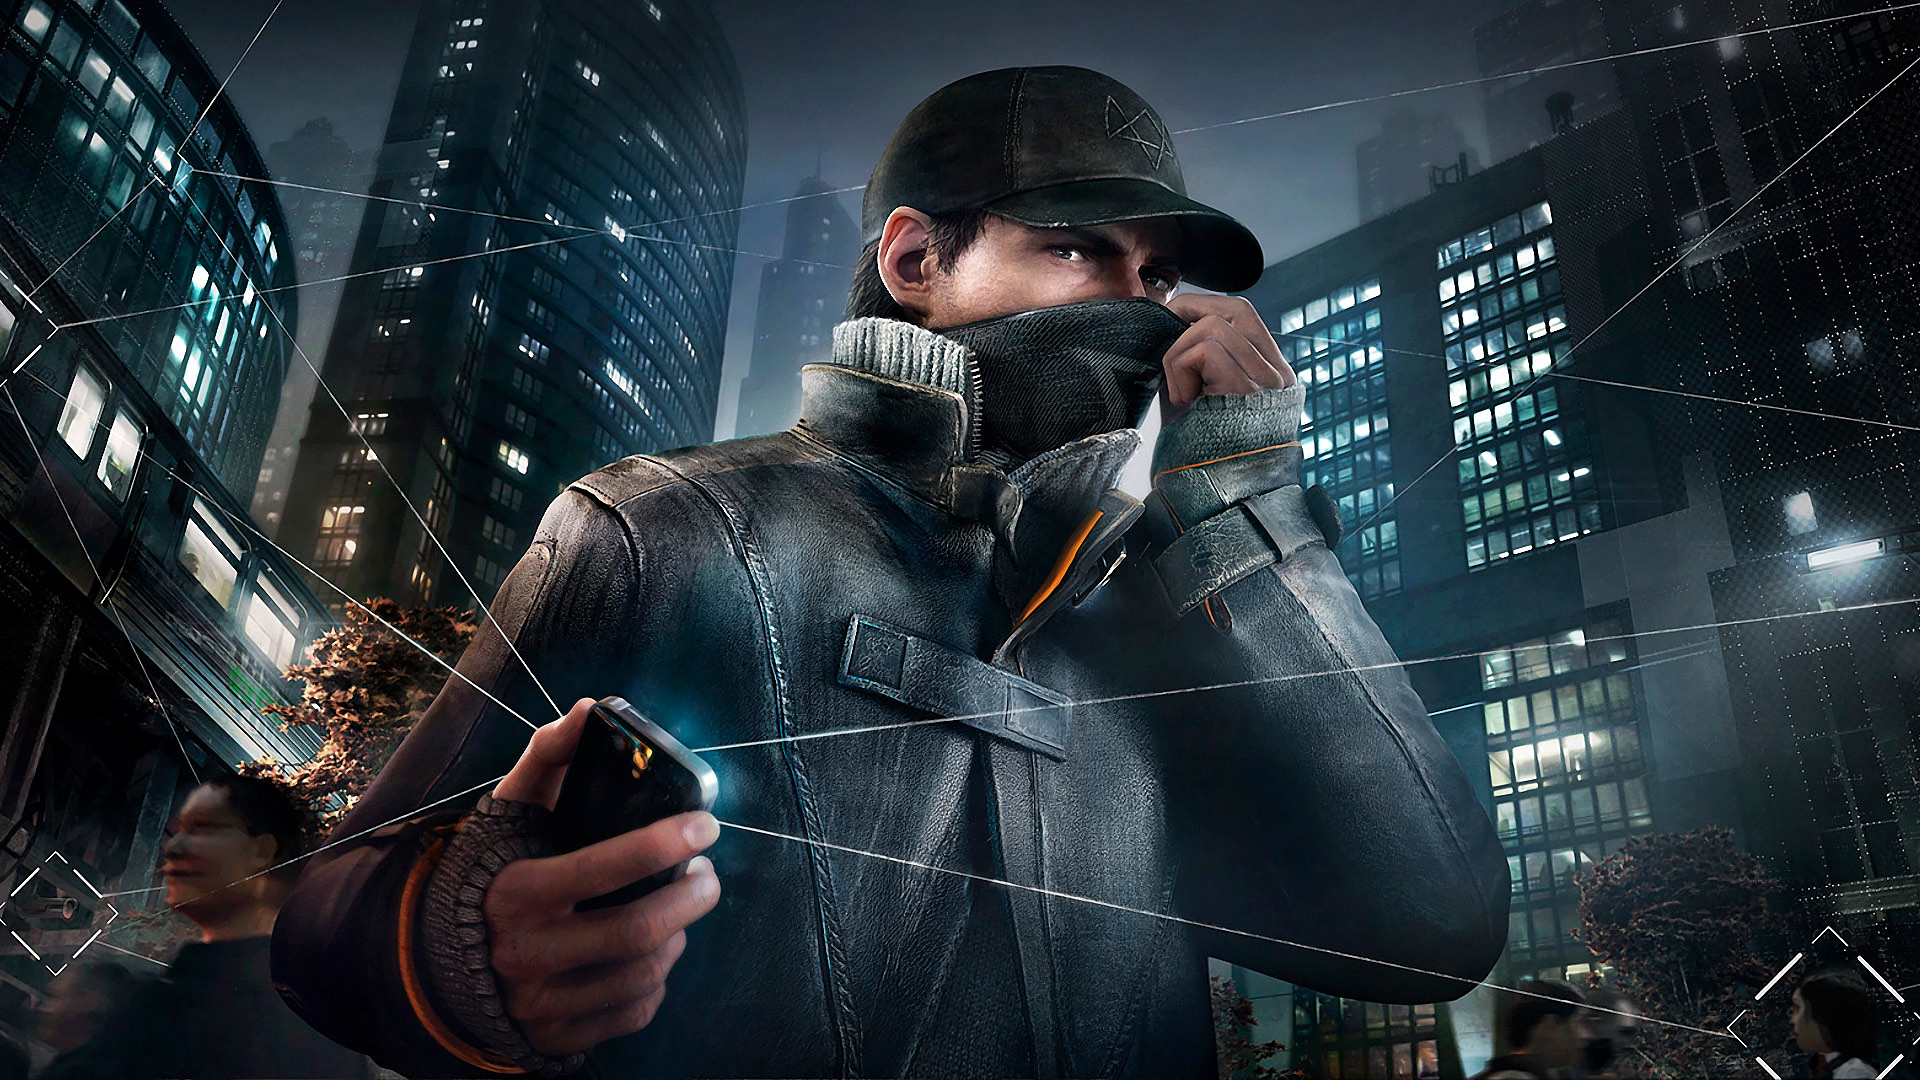 Aiden pearce watch dogs